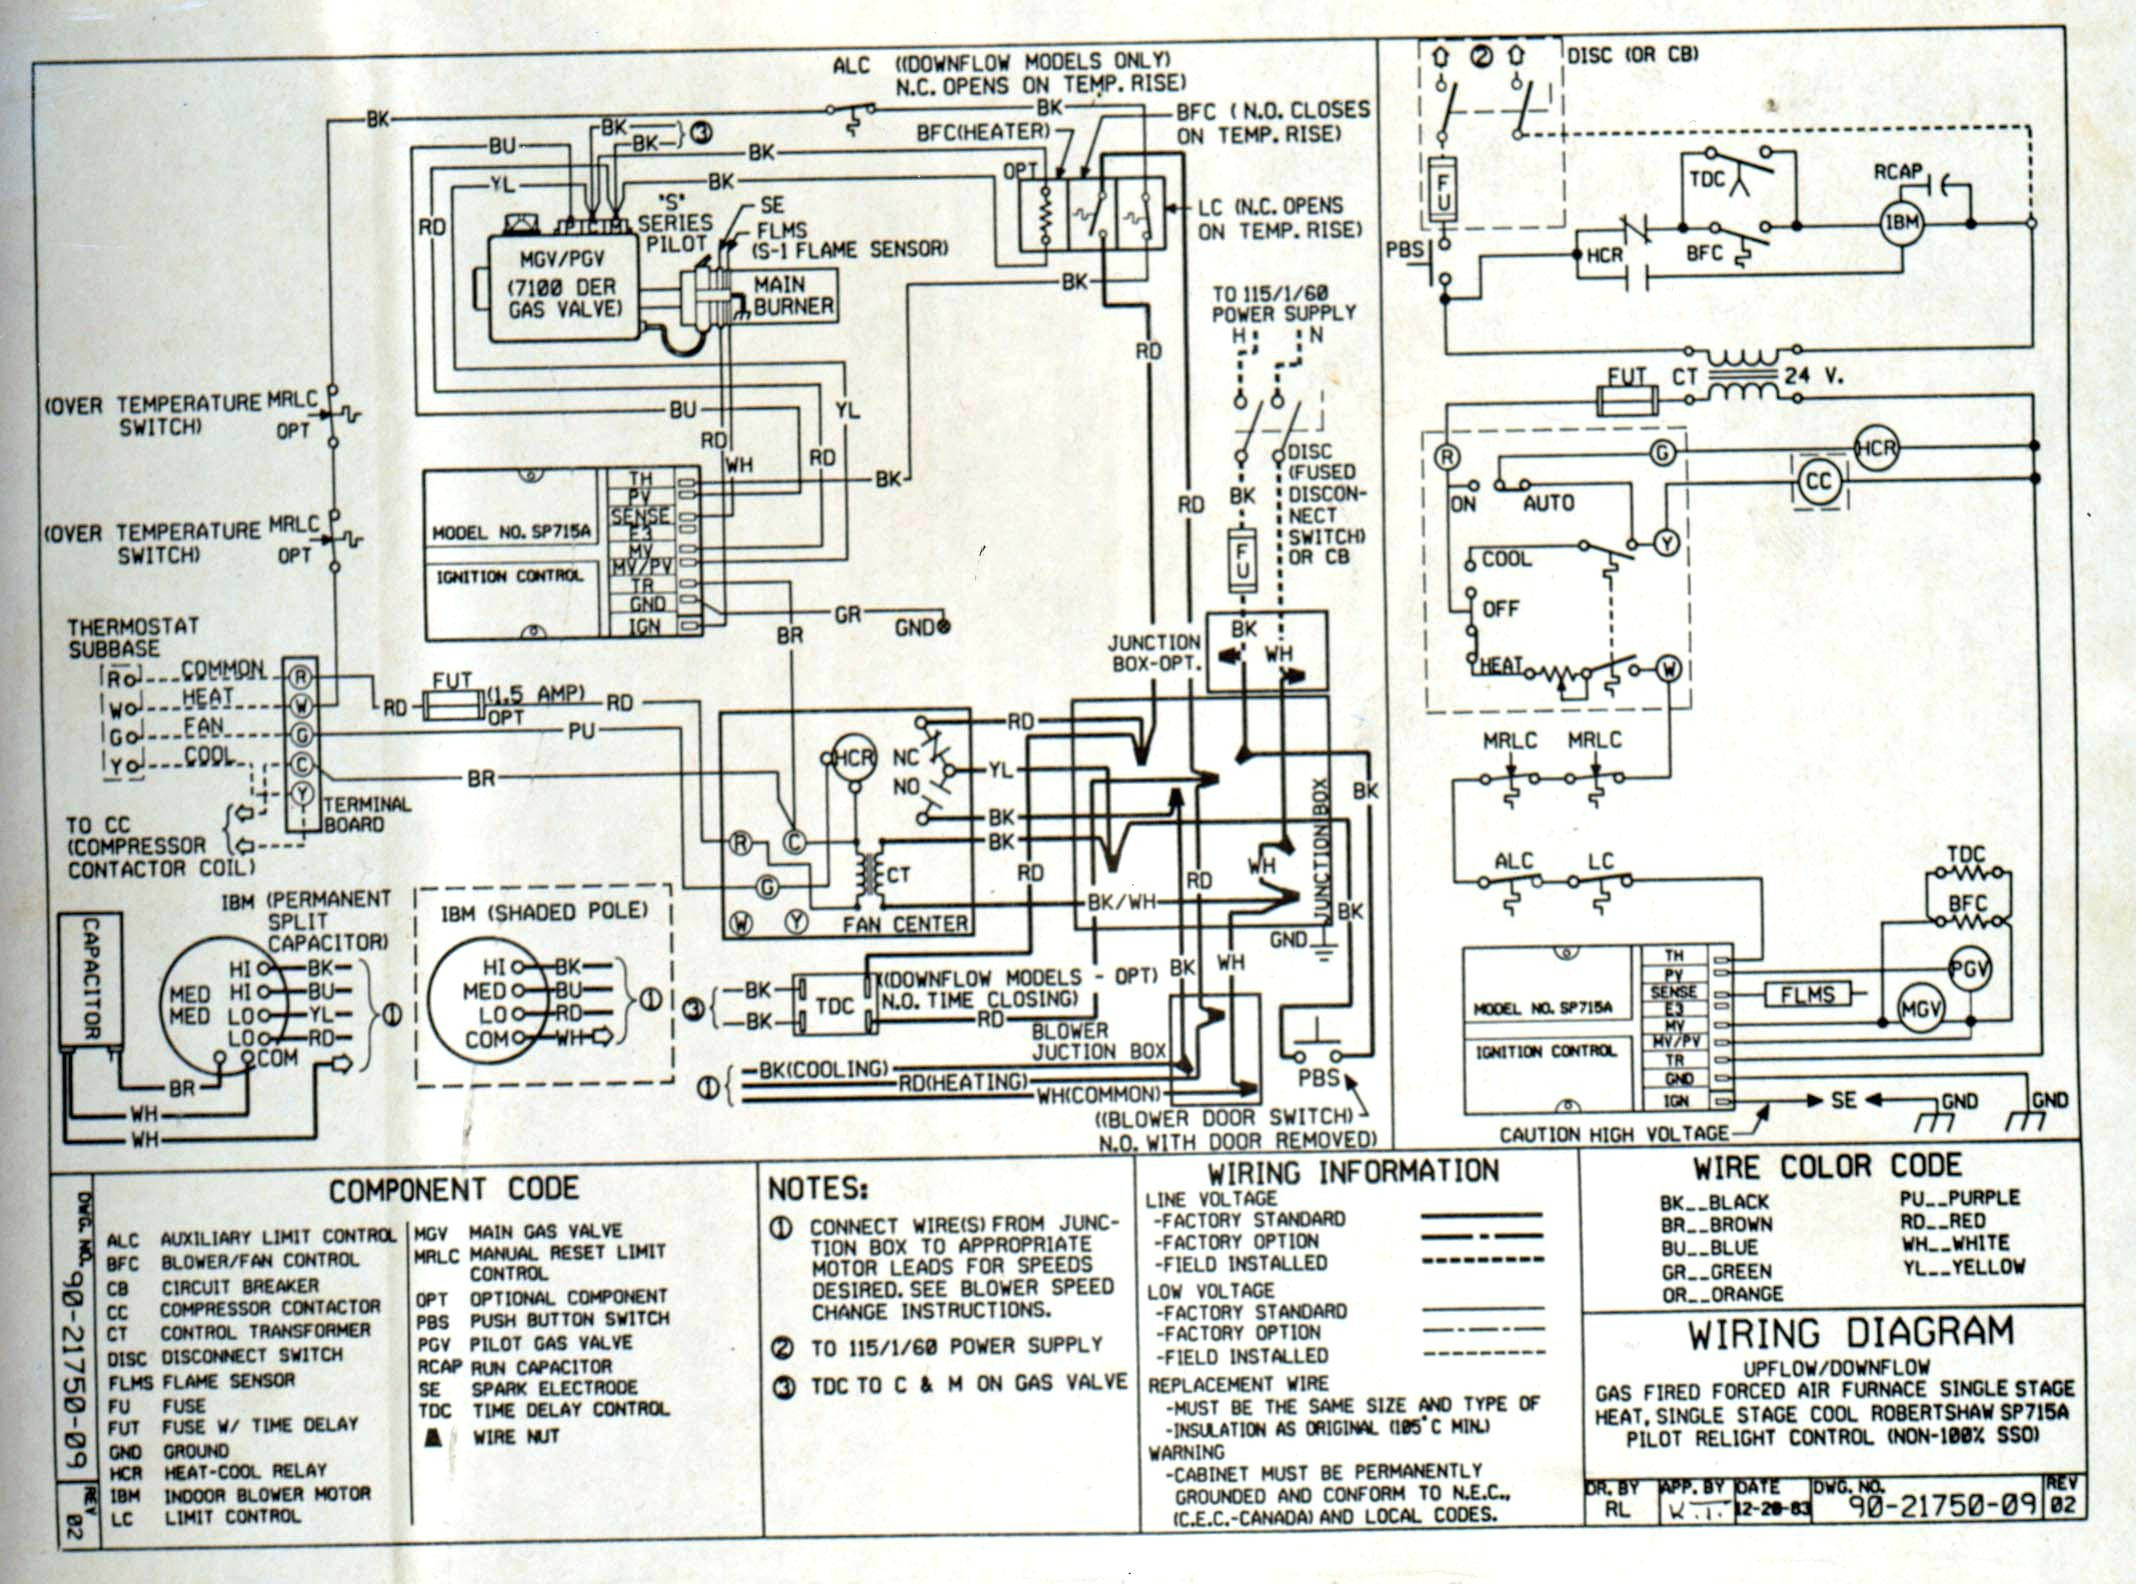 carrier furnace wiring diagram Download-Carrier Furnace Wiring Diagram New Wiring Diagrams For Gas Furnace Valid Refrence Wiring Diagram For 11-p